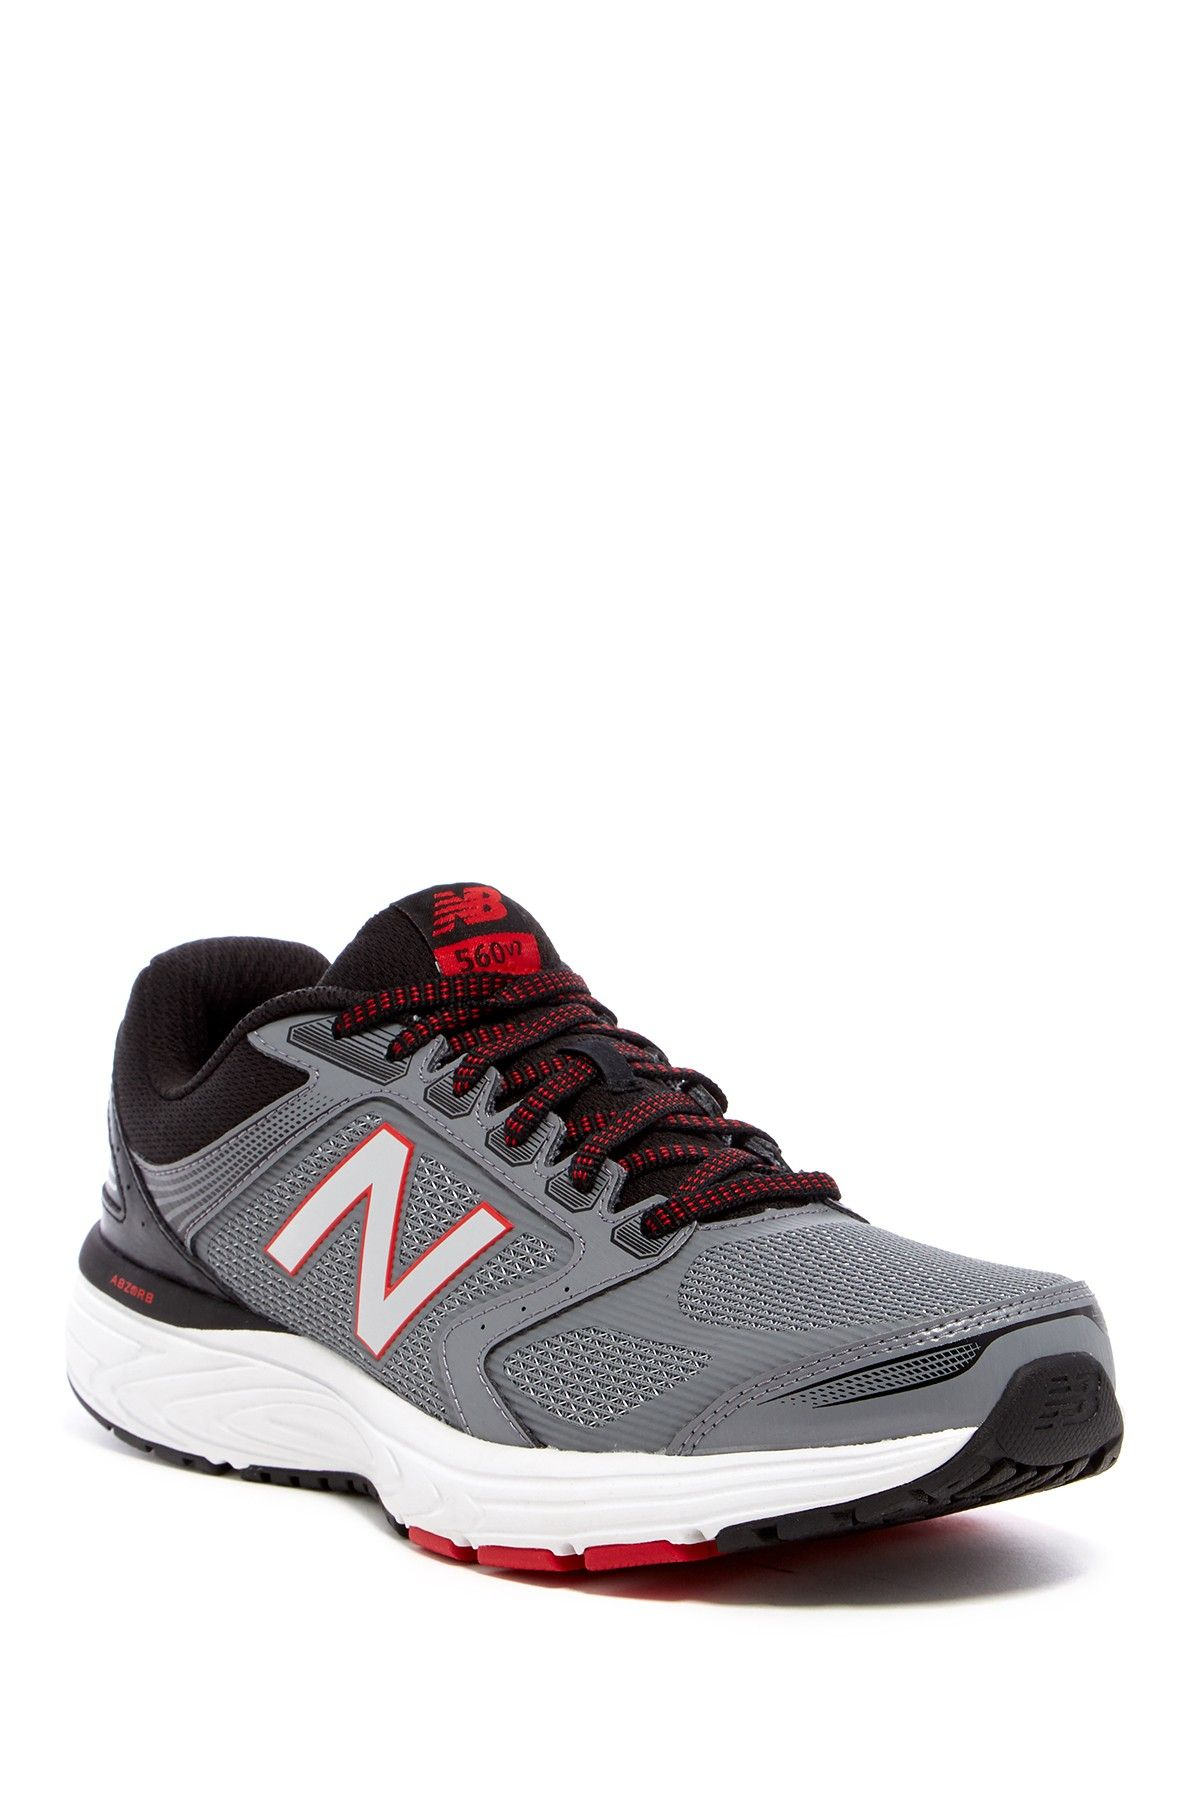 0baaab7b0a5 New Balance 560V7 Running Sneaker - Extra Wide Width Available ...